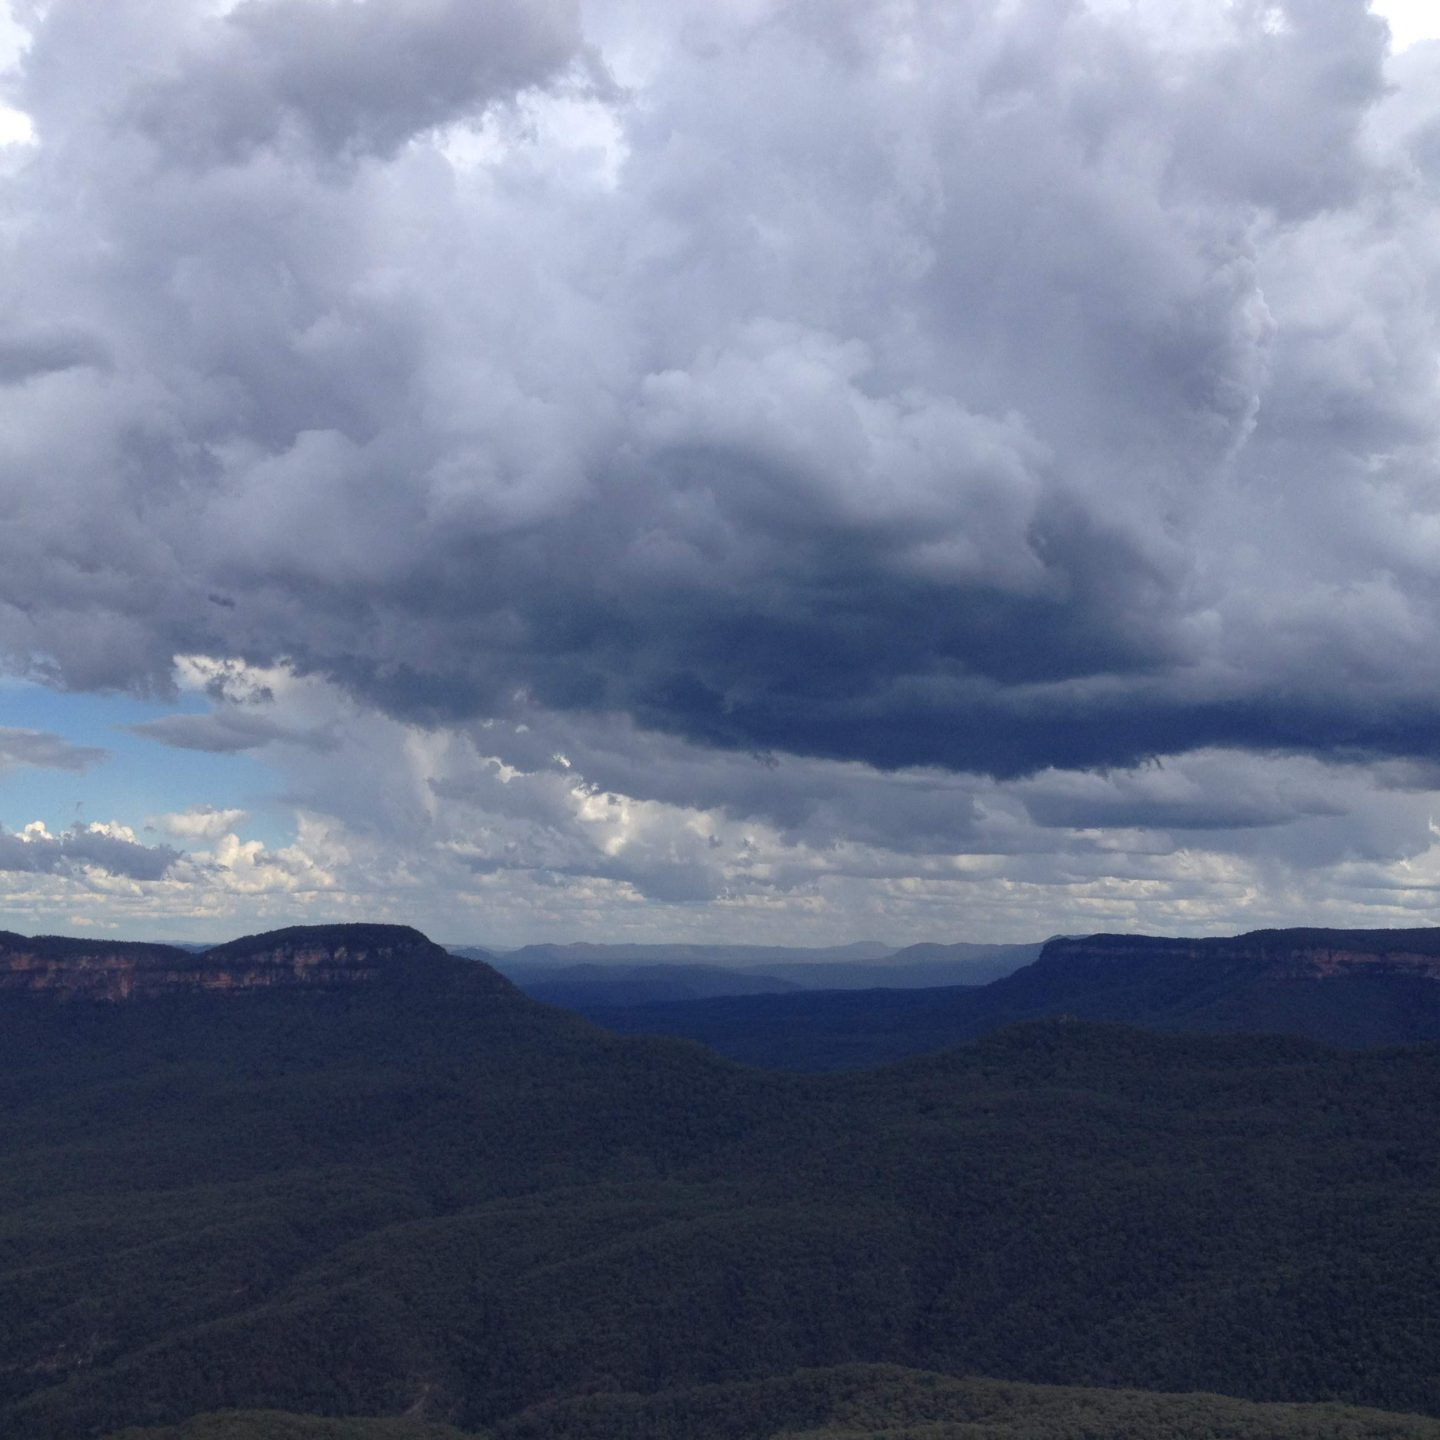 A storm brewing in Katoomba, New South Wales